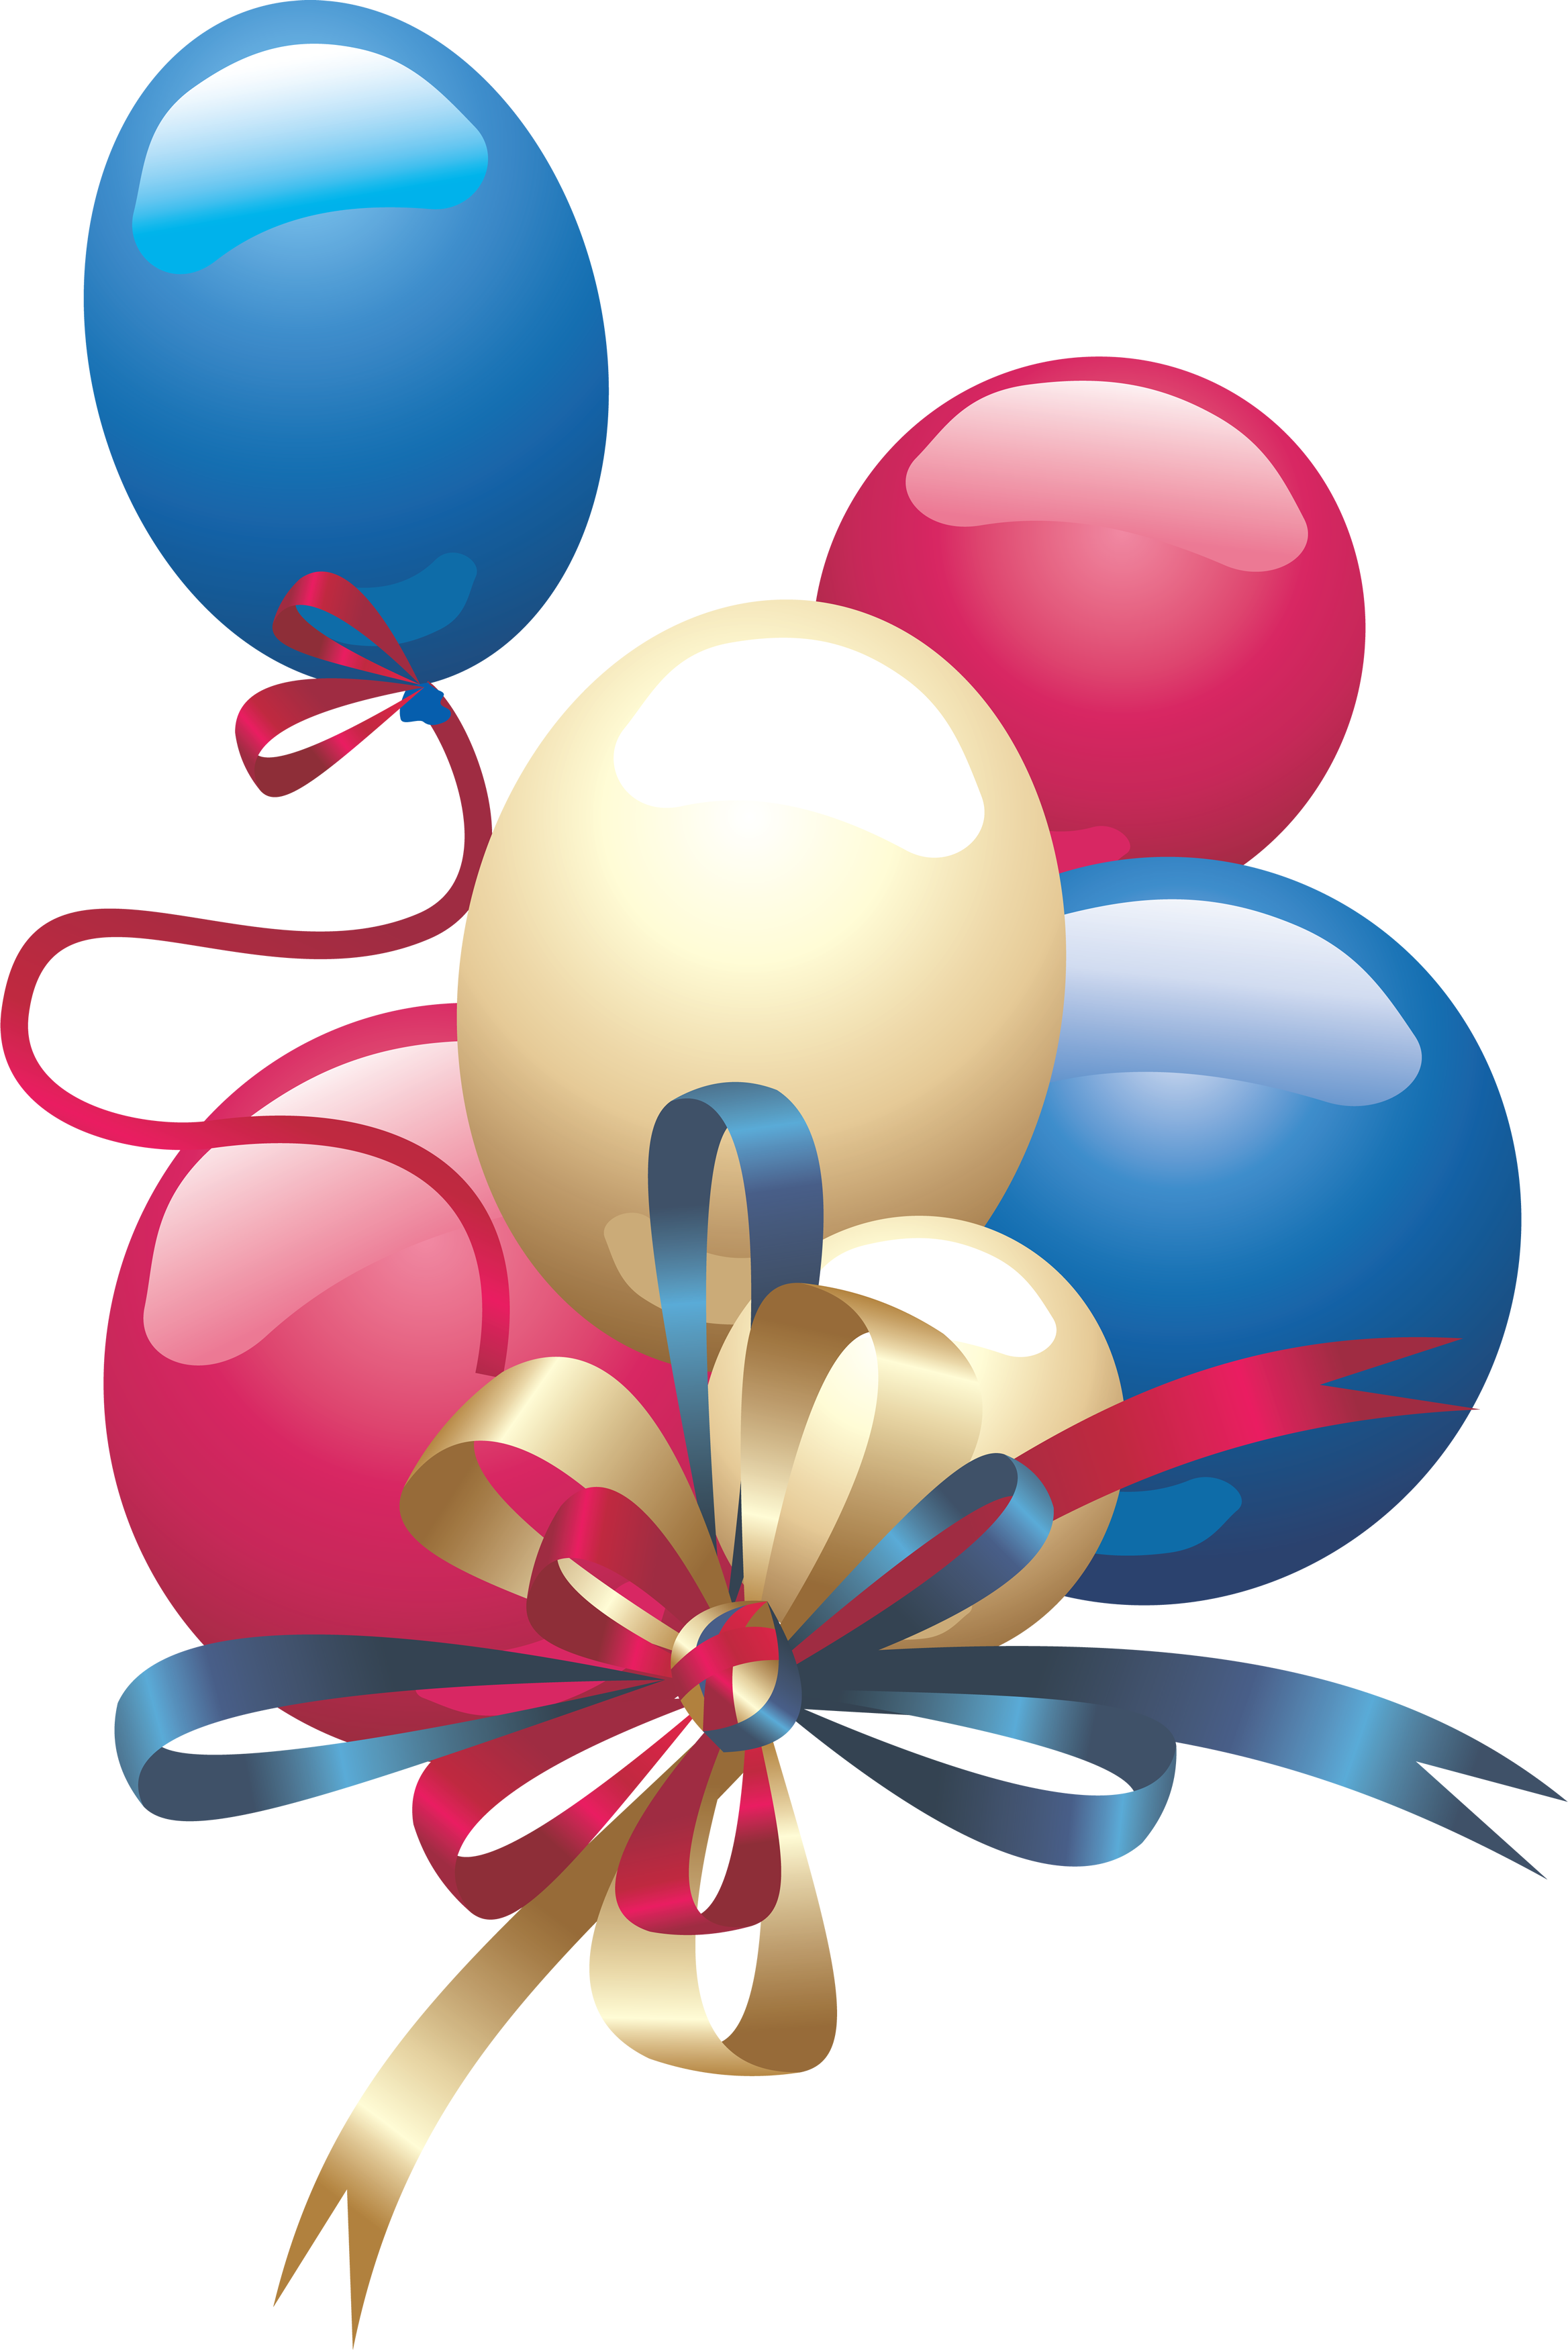 Balloon free picture download. Images png